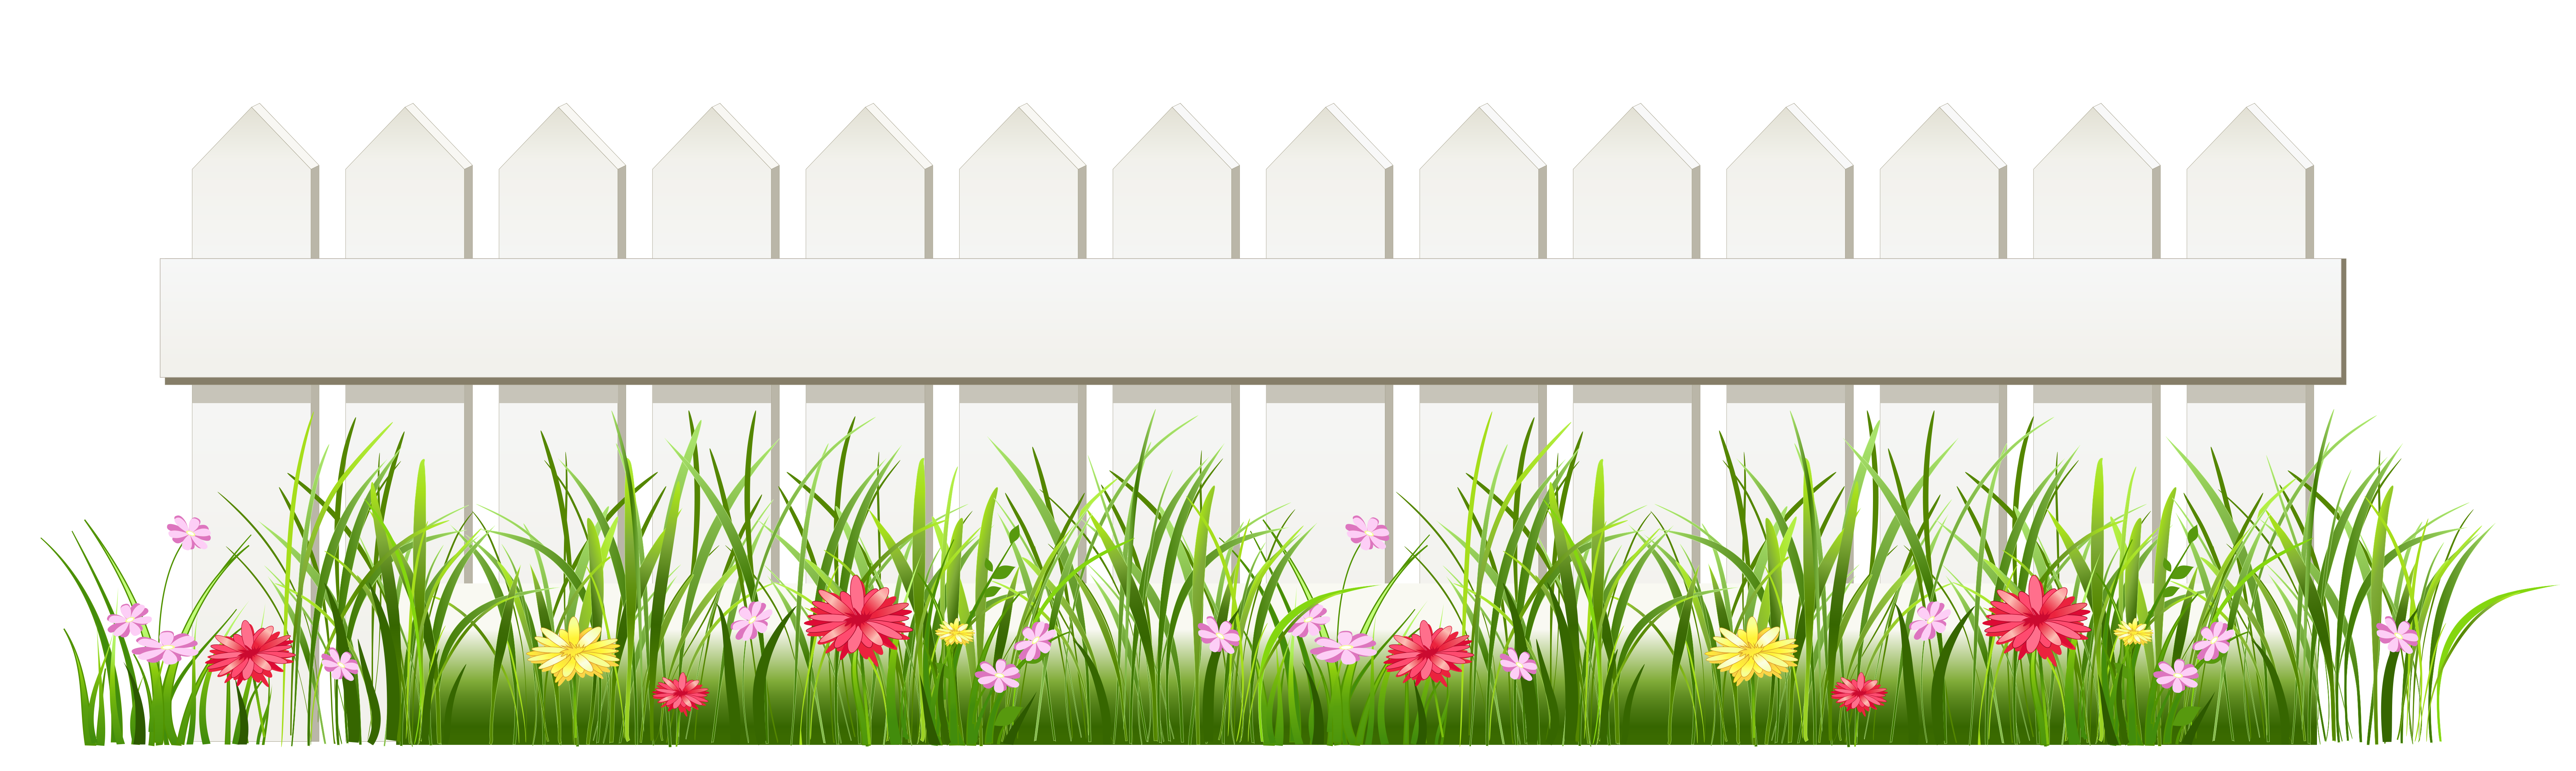 Transparent White Fence with Grass PNG Clipart